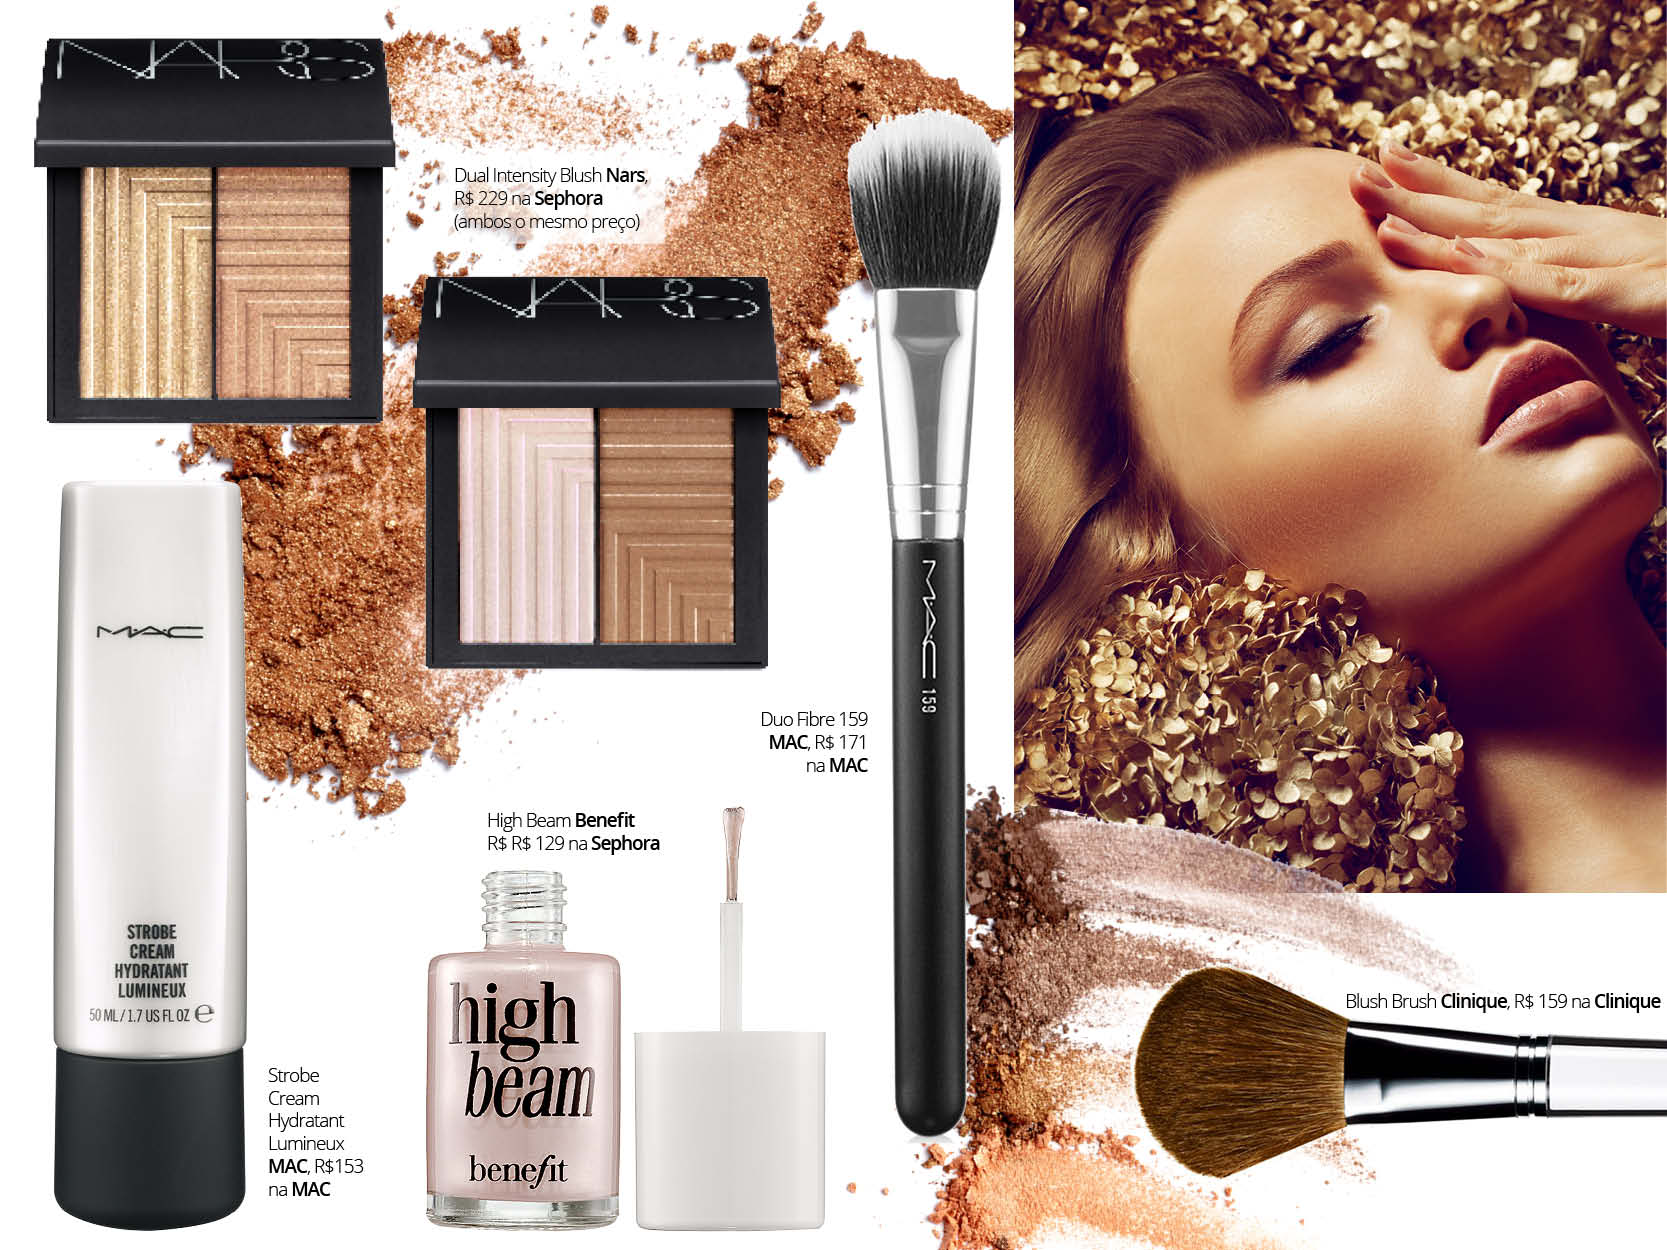 beauty flash - strobing para noivas e madrinhas_revista icasei4